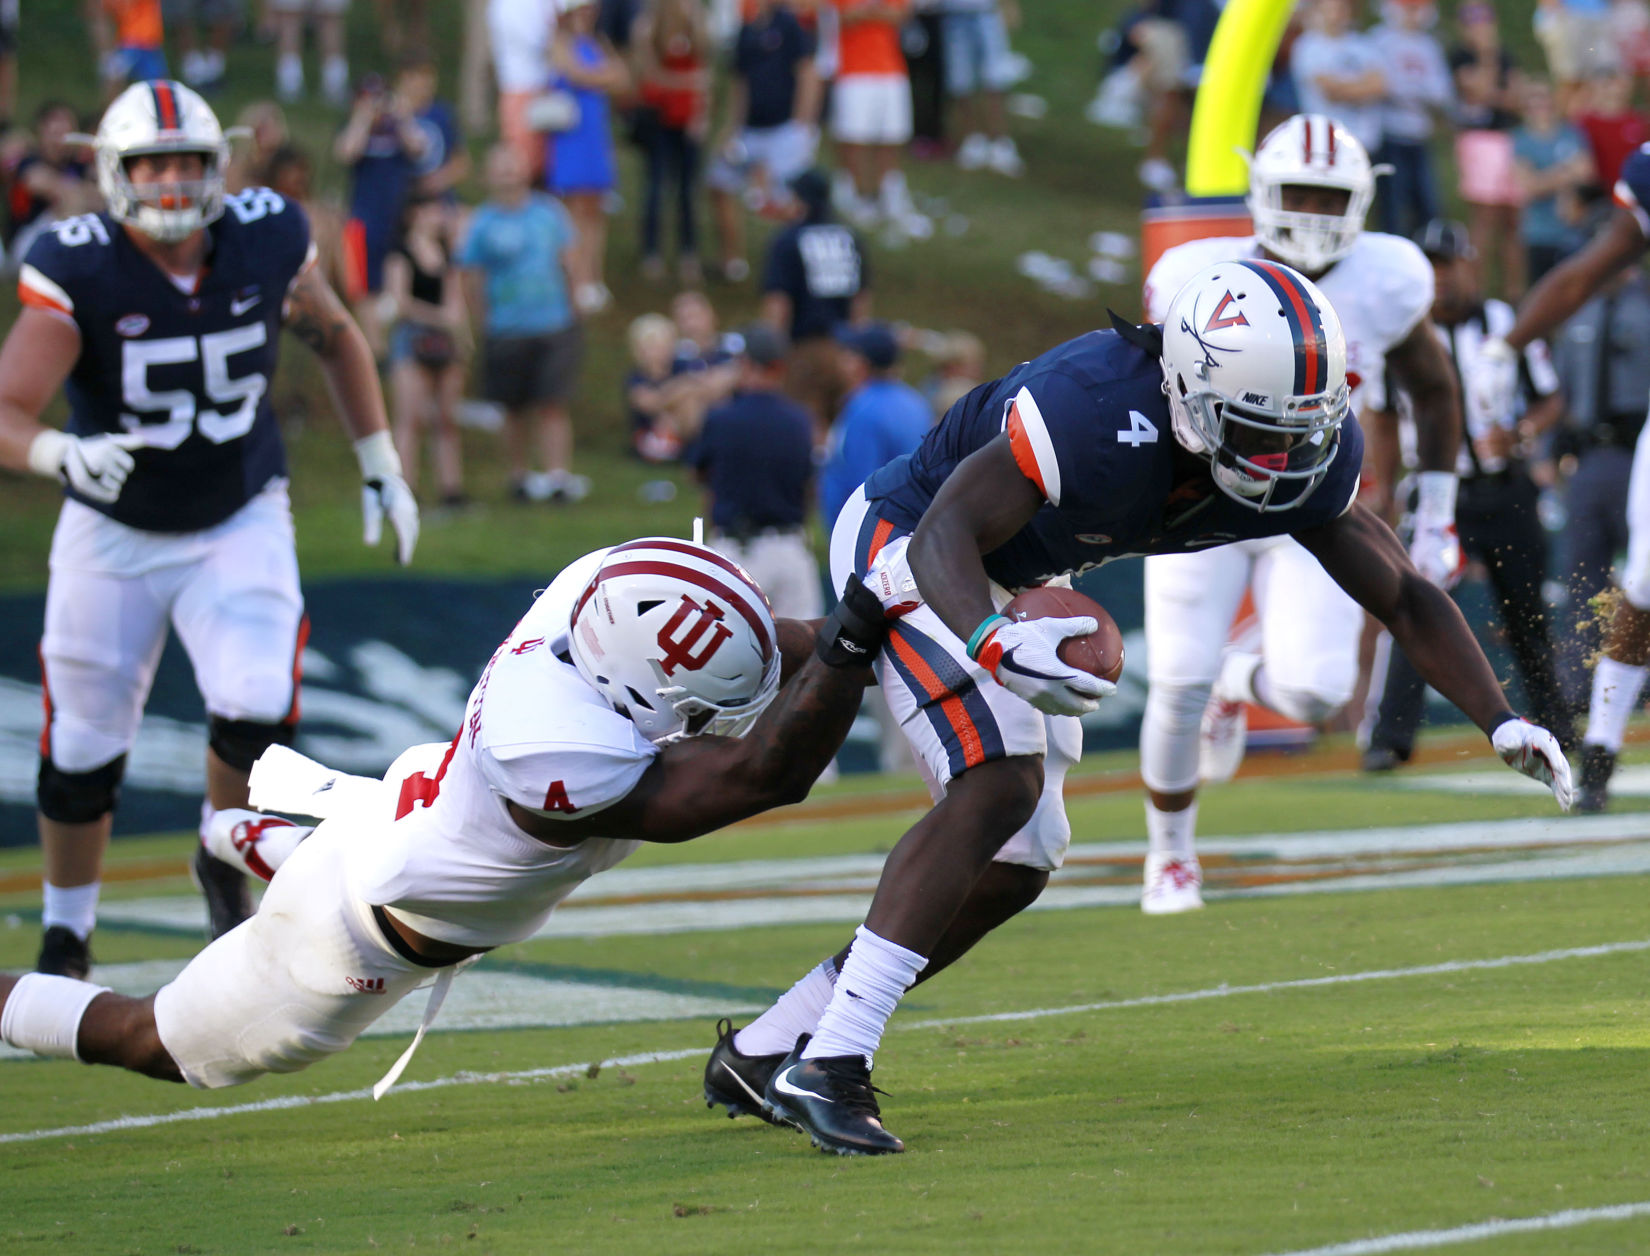 IN cruises past UVA, 34-17